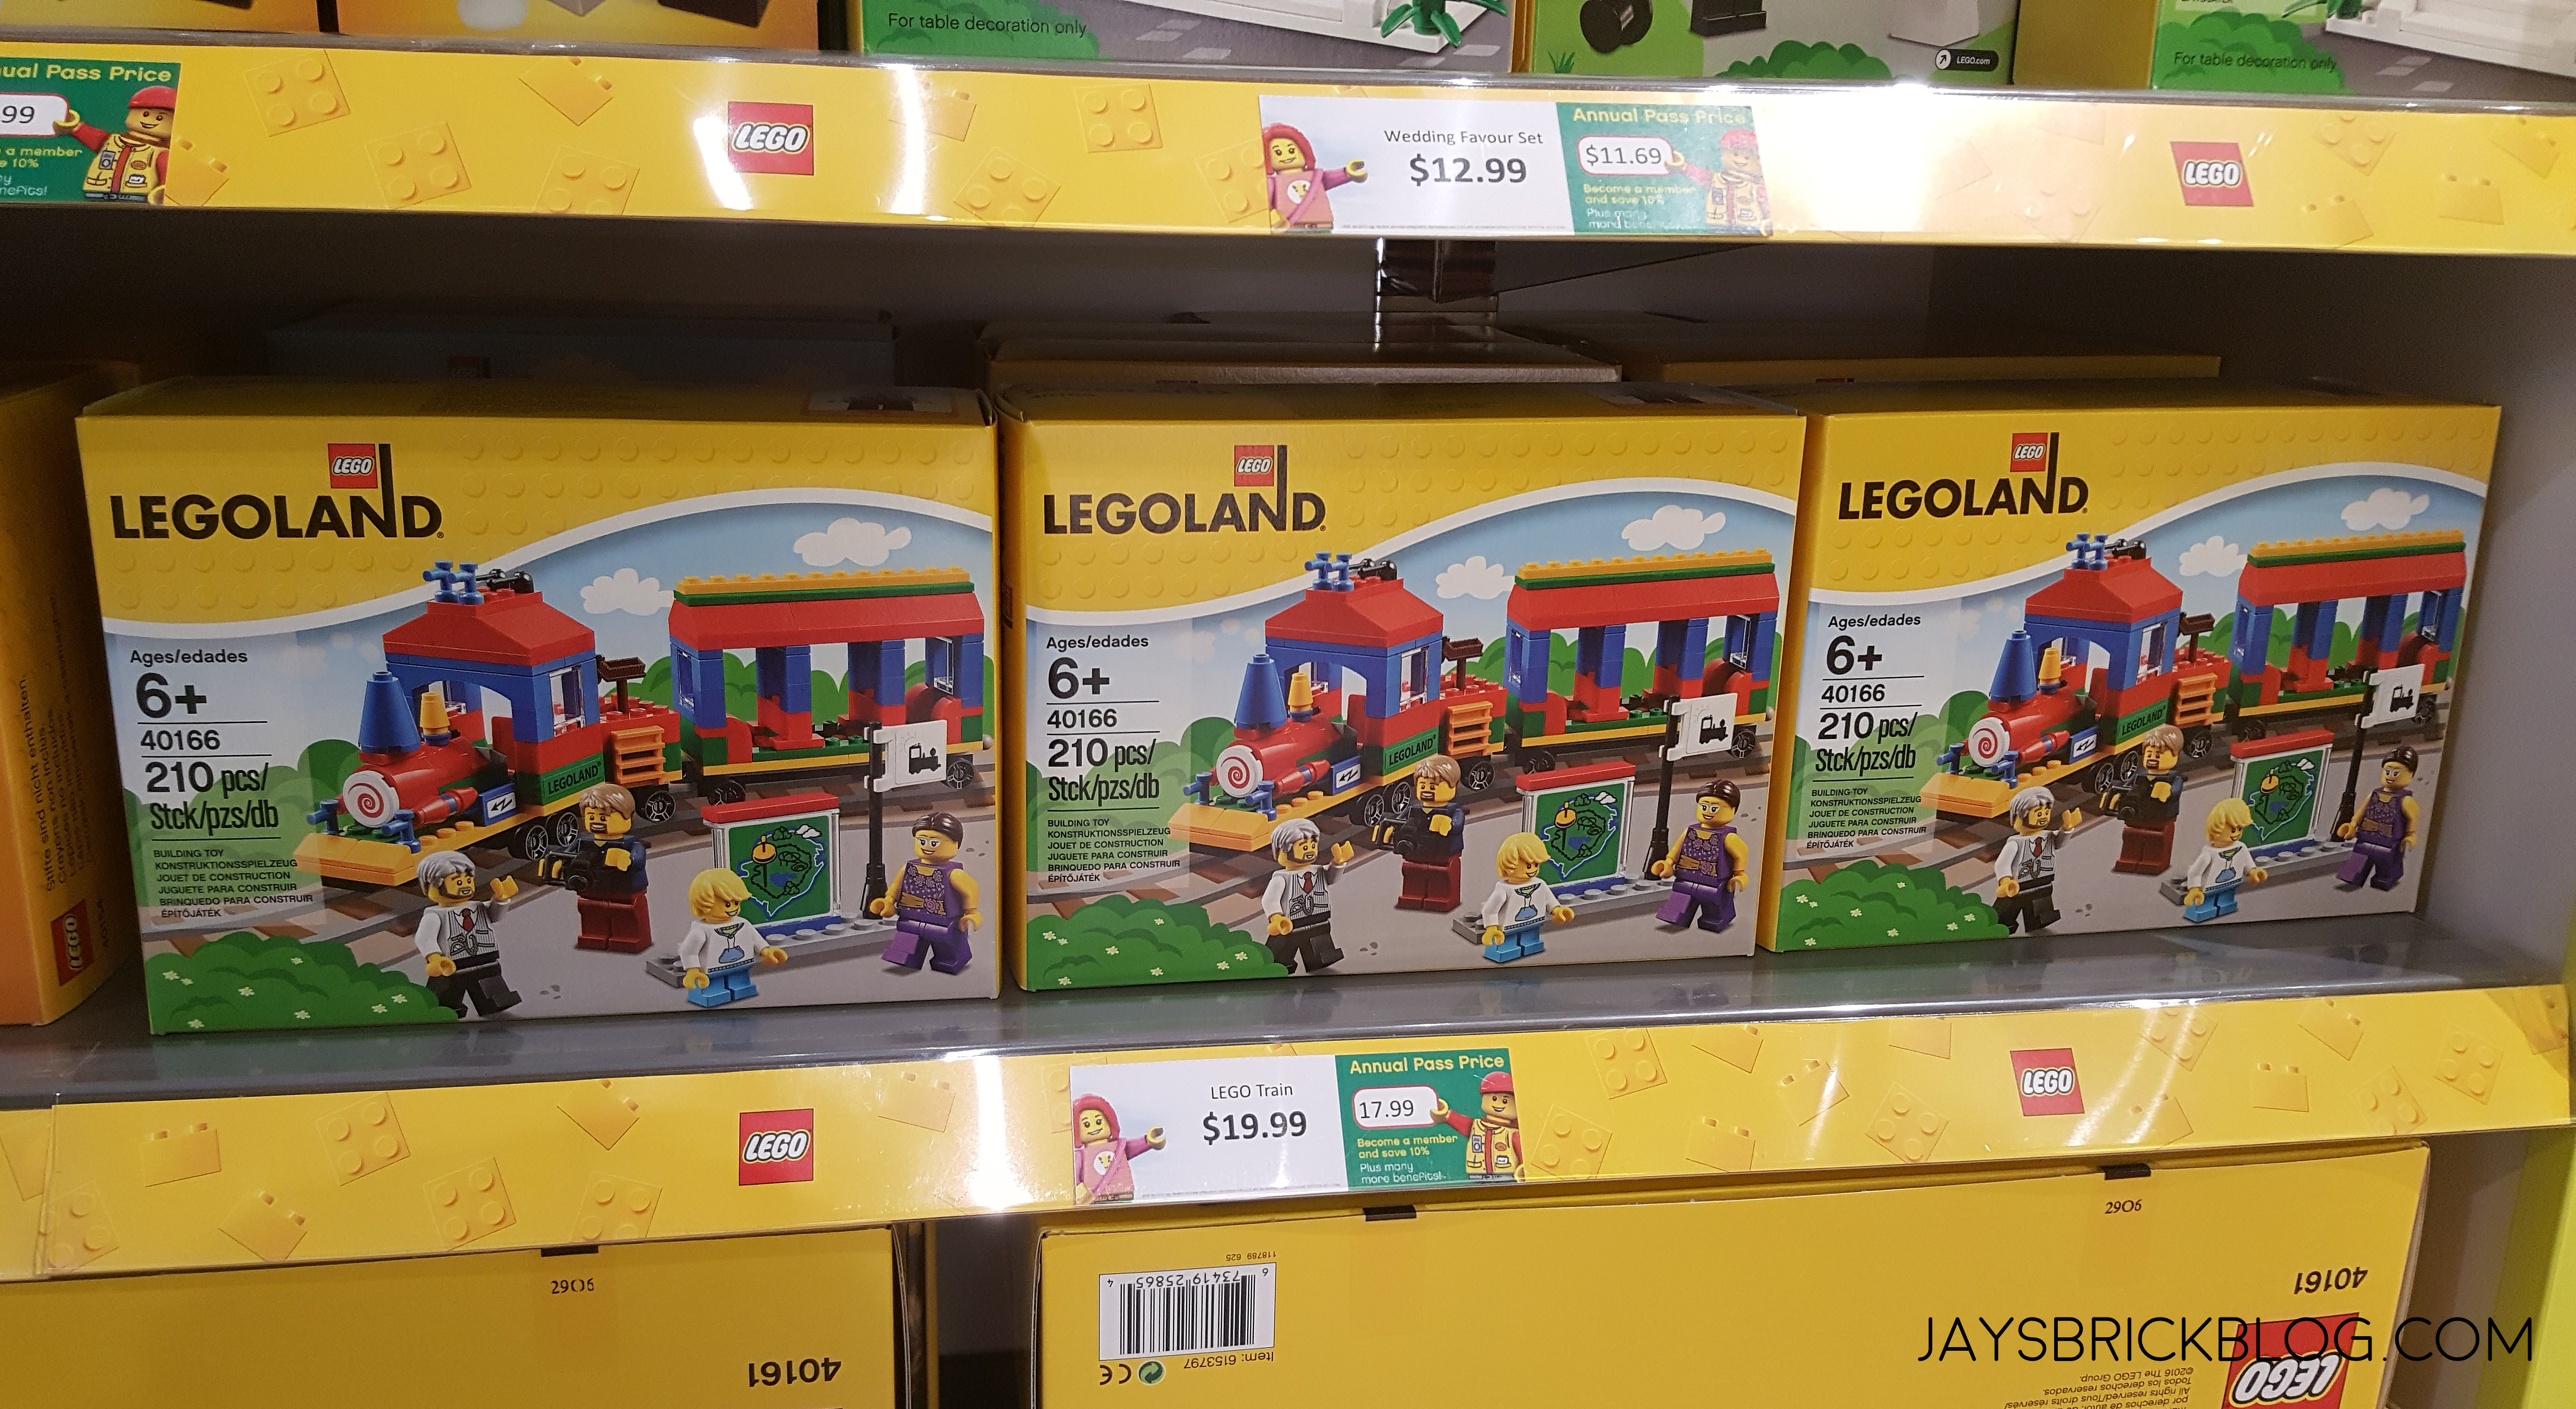 Checking Out The Lego Shop At The Legoland Discovery